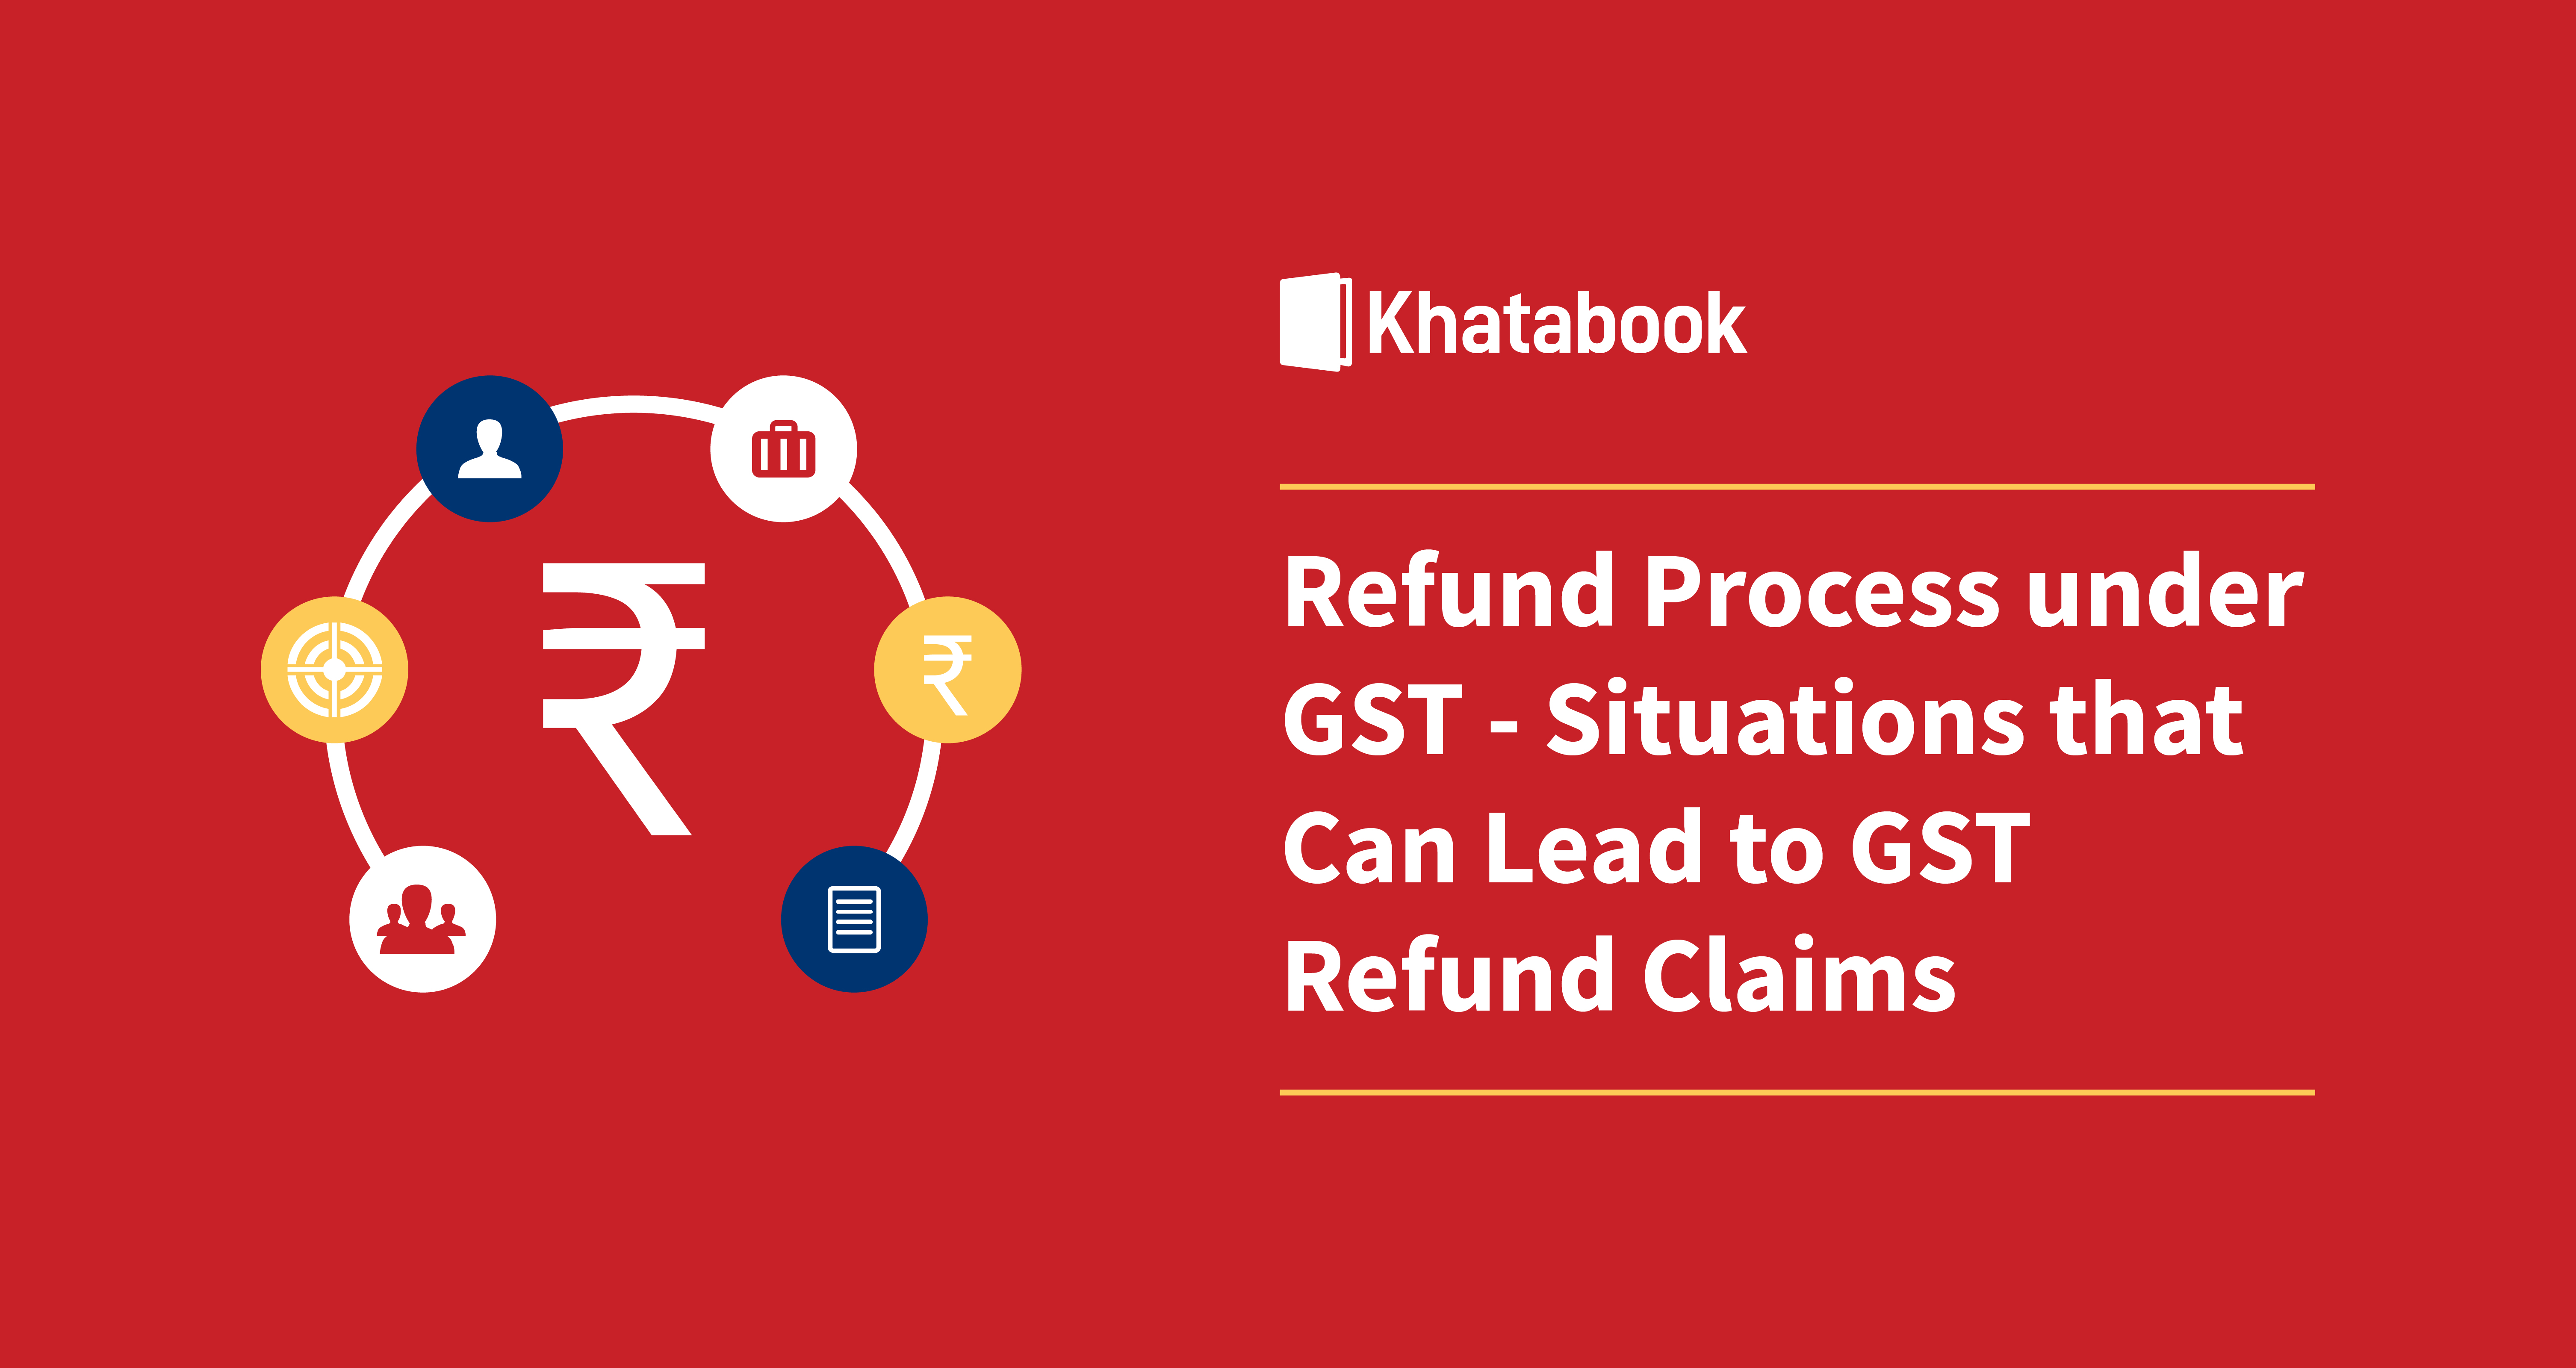 Refund Process Under GST- Situations That Can Lead To GST Refund Claims